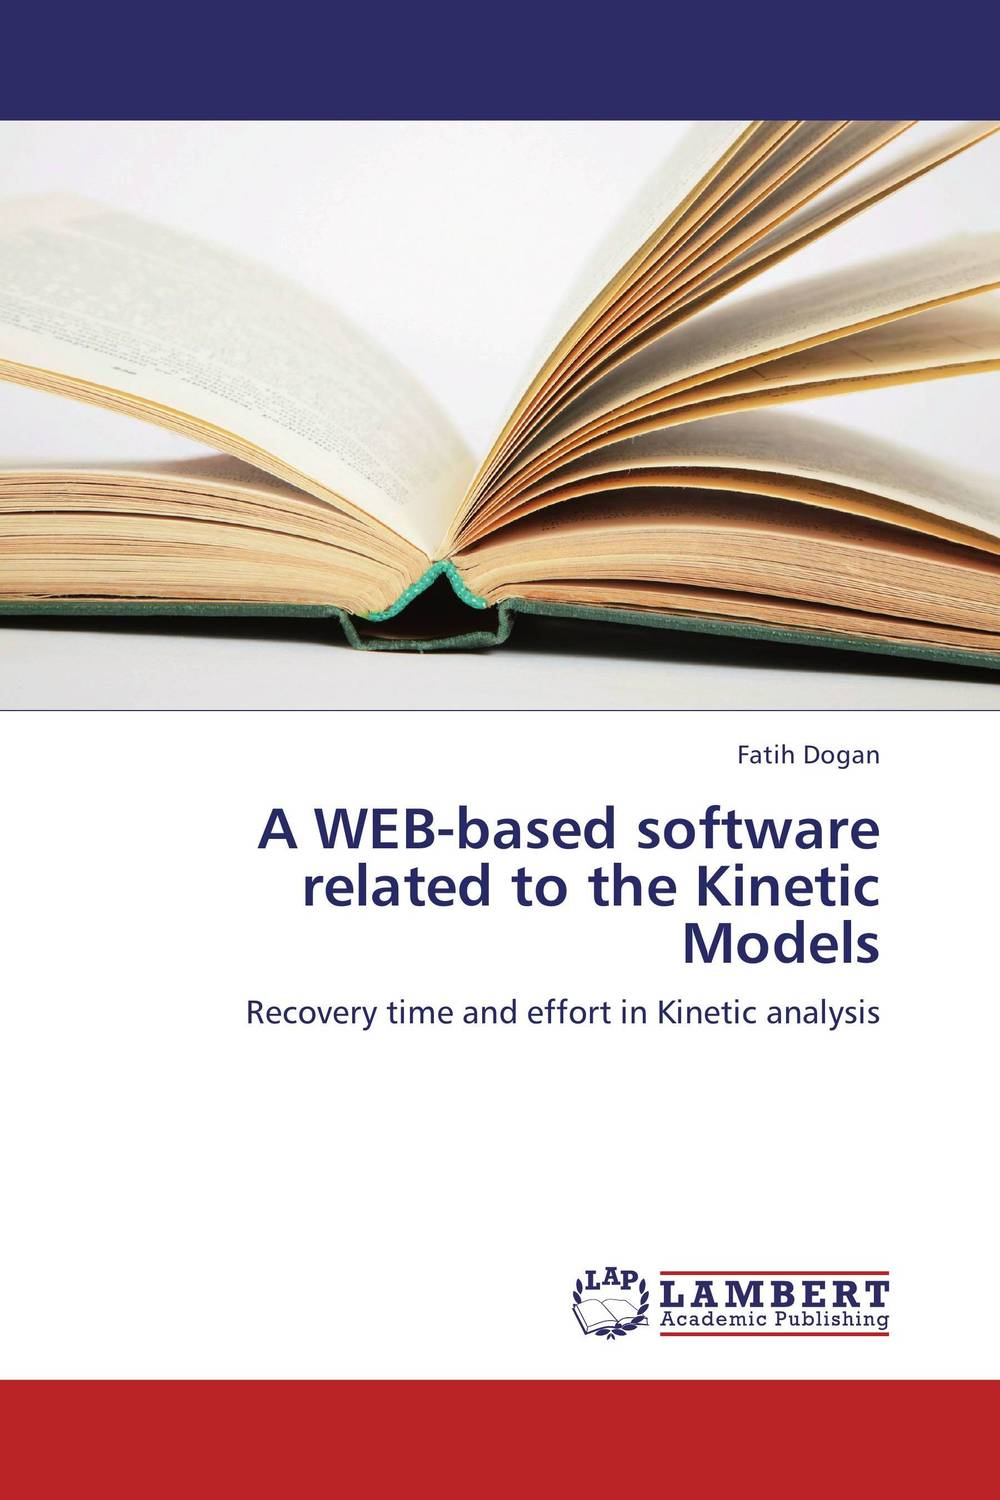 A WEB-based software related to the Kinetic Models overview of web based business